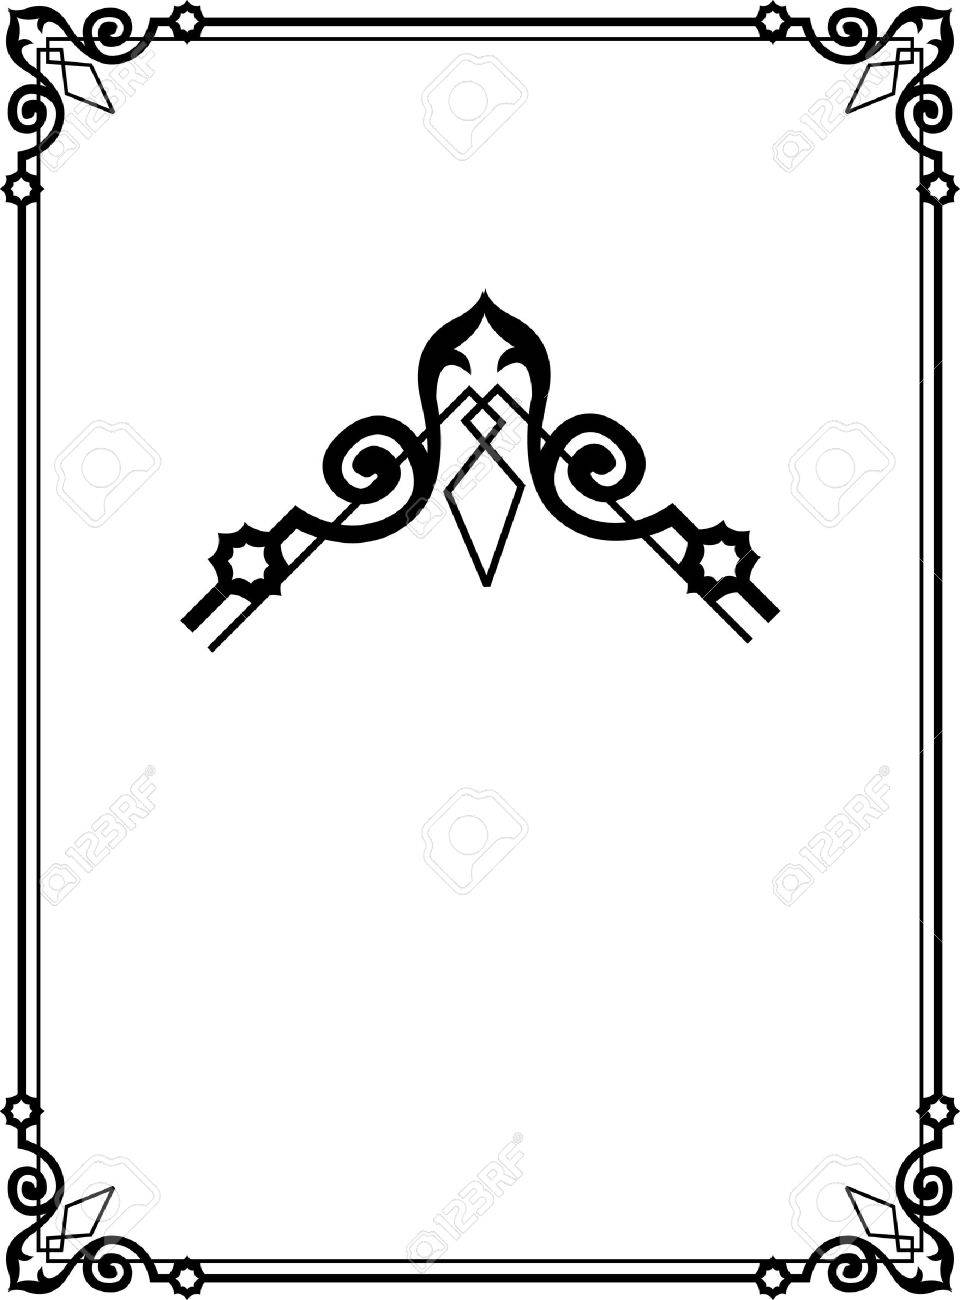 Border Frame With Beautiful Decorative Corners Royalty Free Cliparts